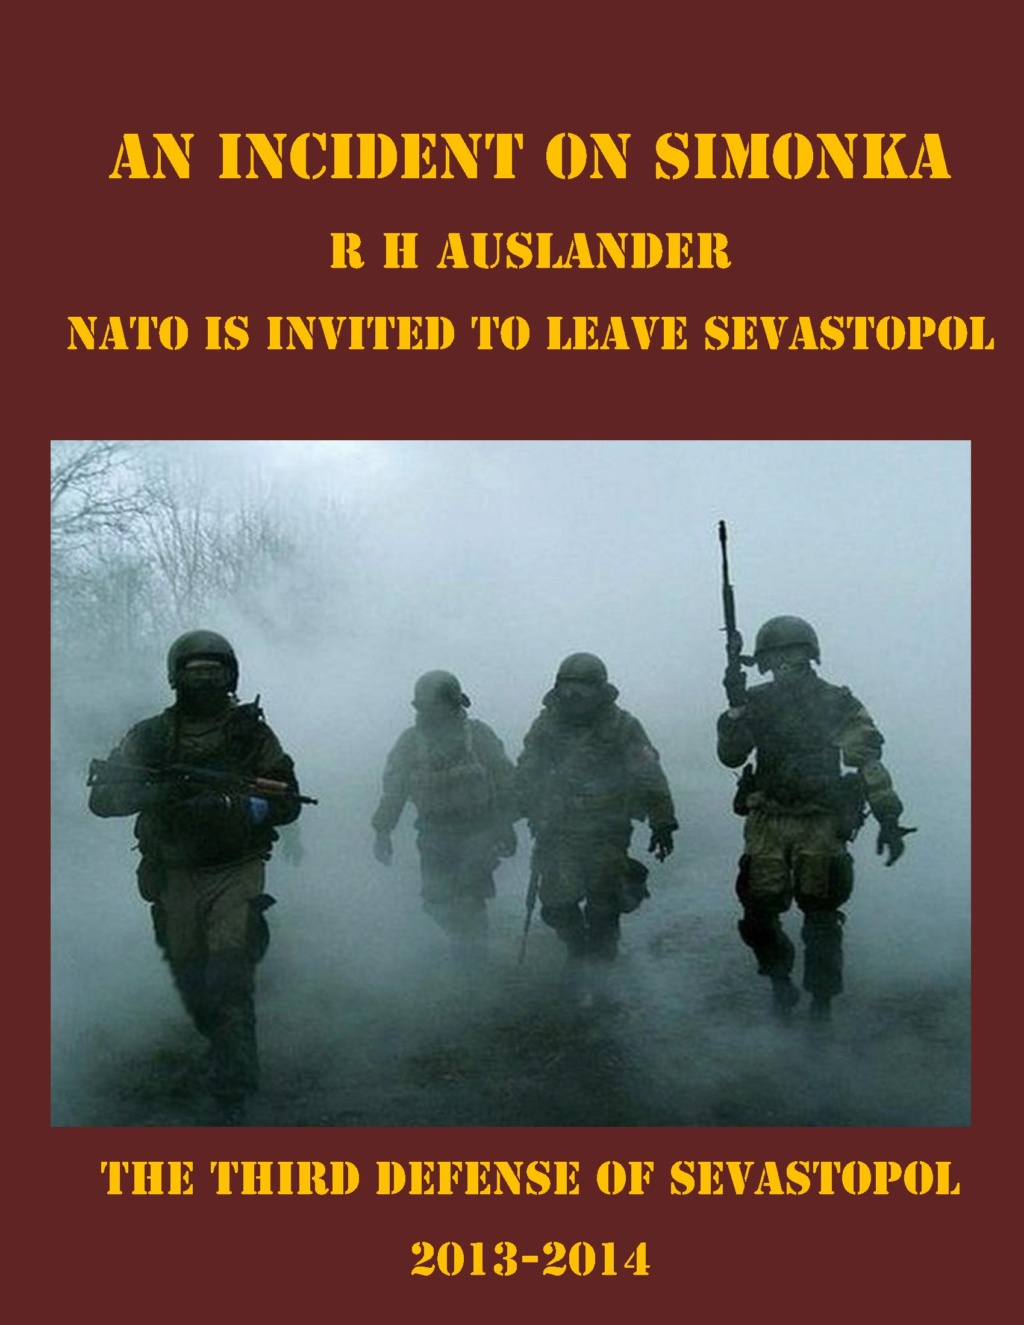 Never The Last One, A Novel of Spetznaz - Page 3 Incide10